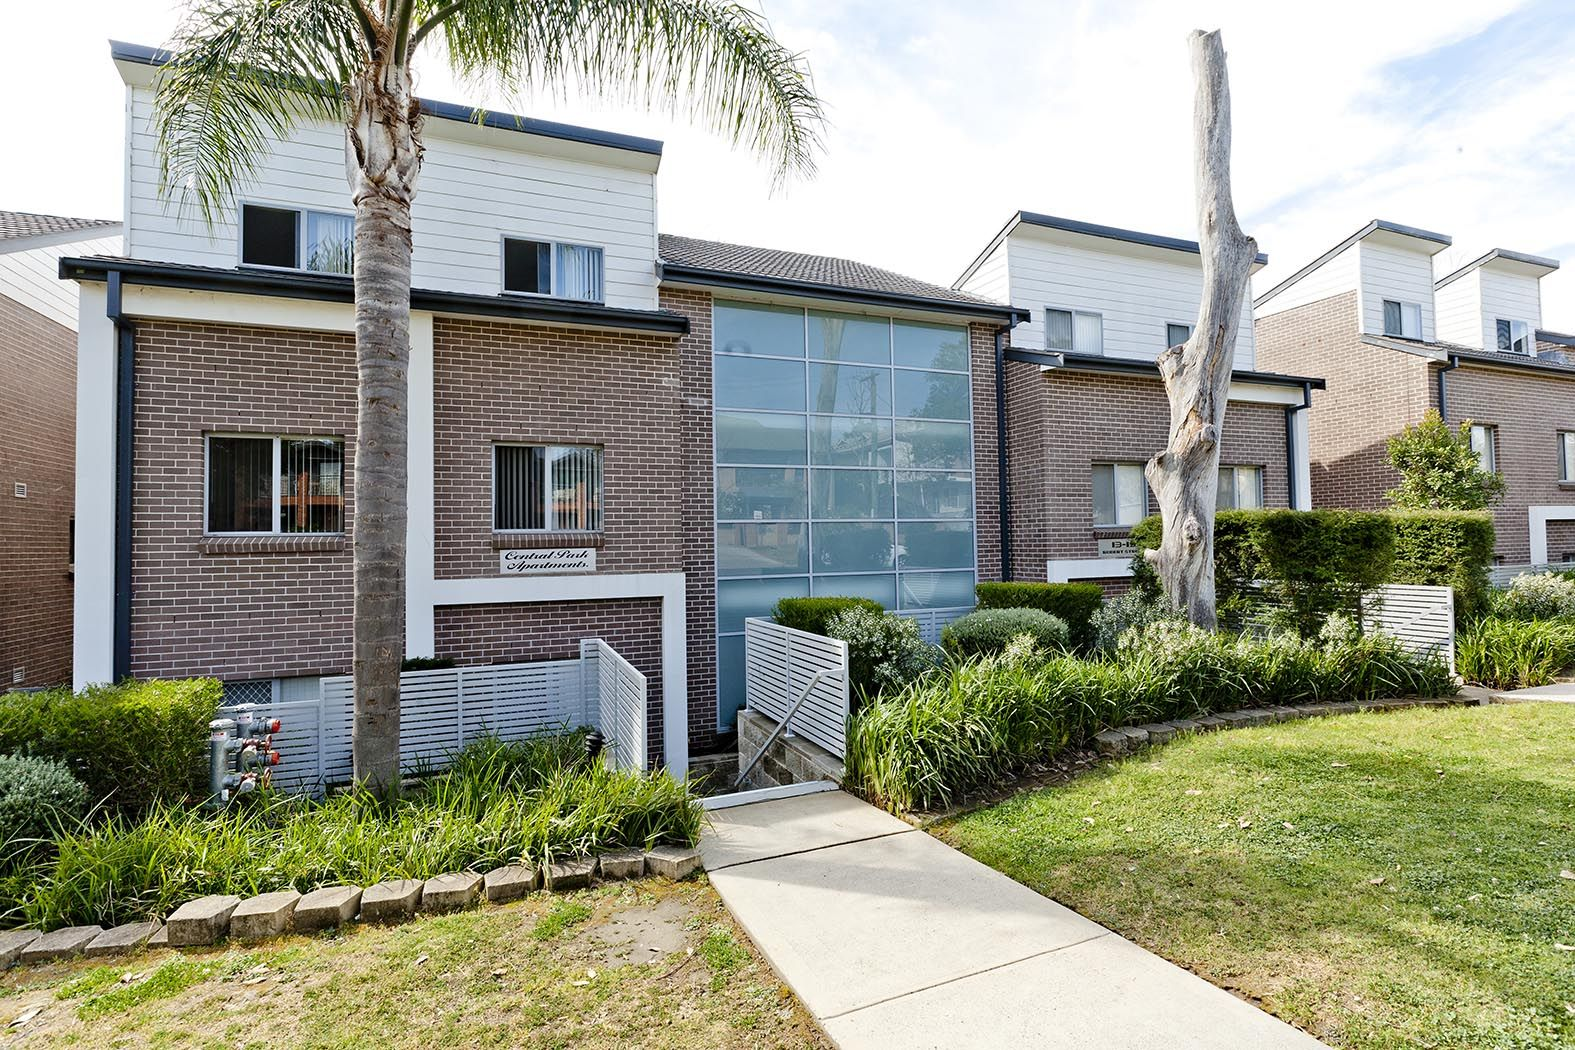 25/13-19 Robert Street, Penrith NSW 2750, Image 0